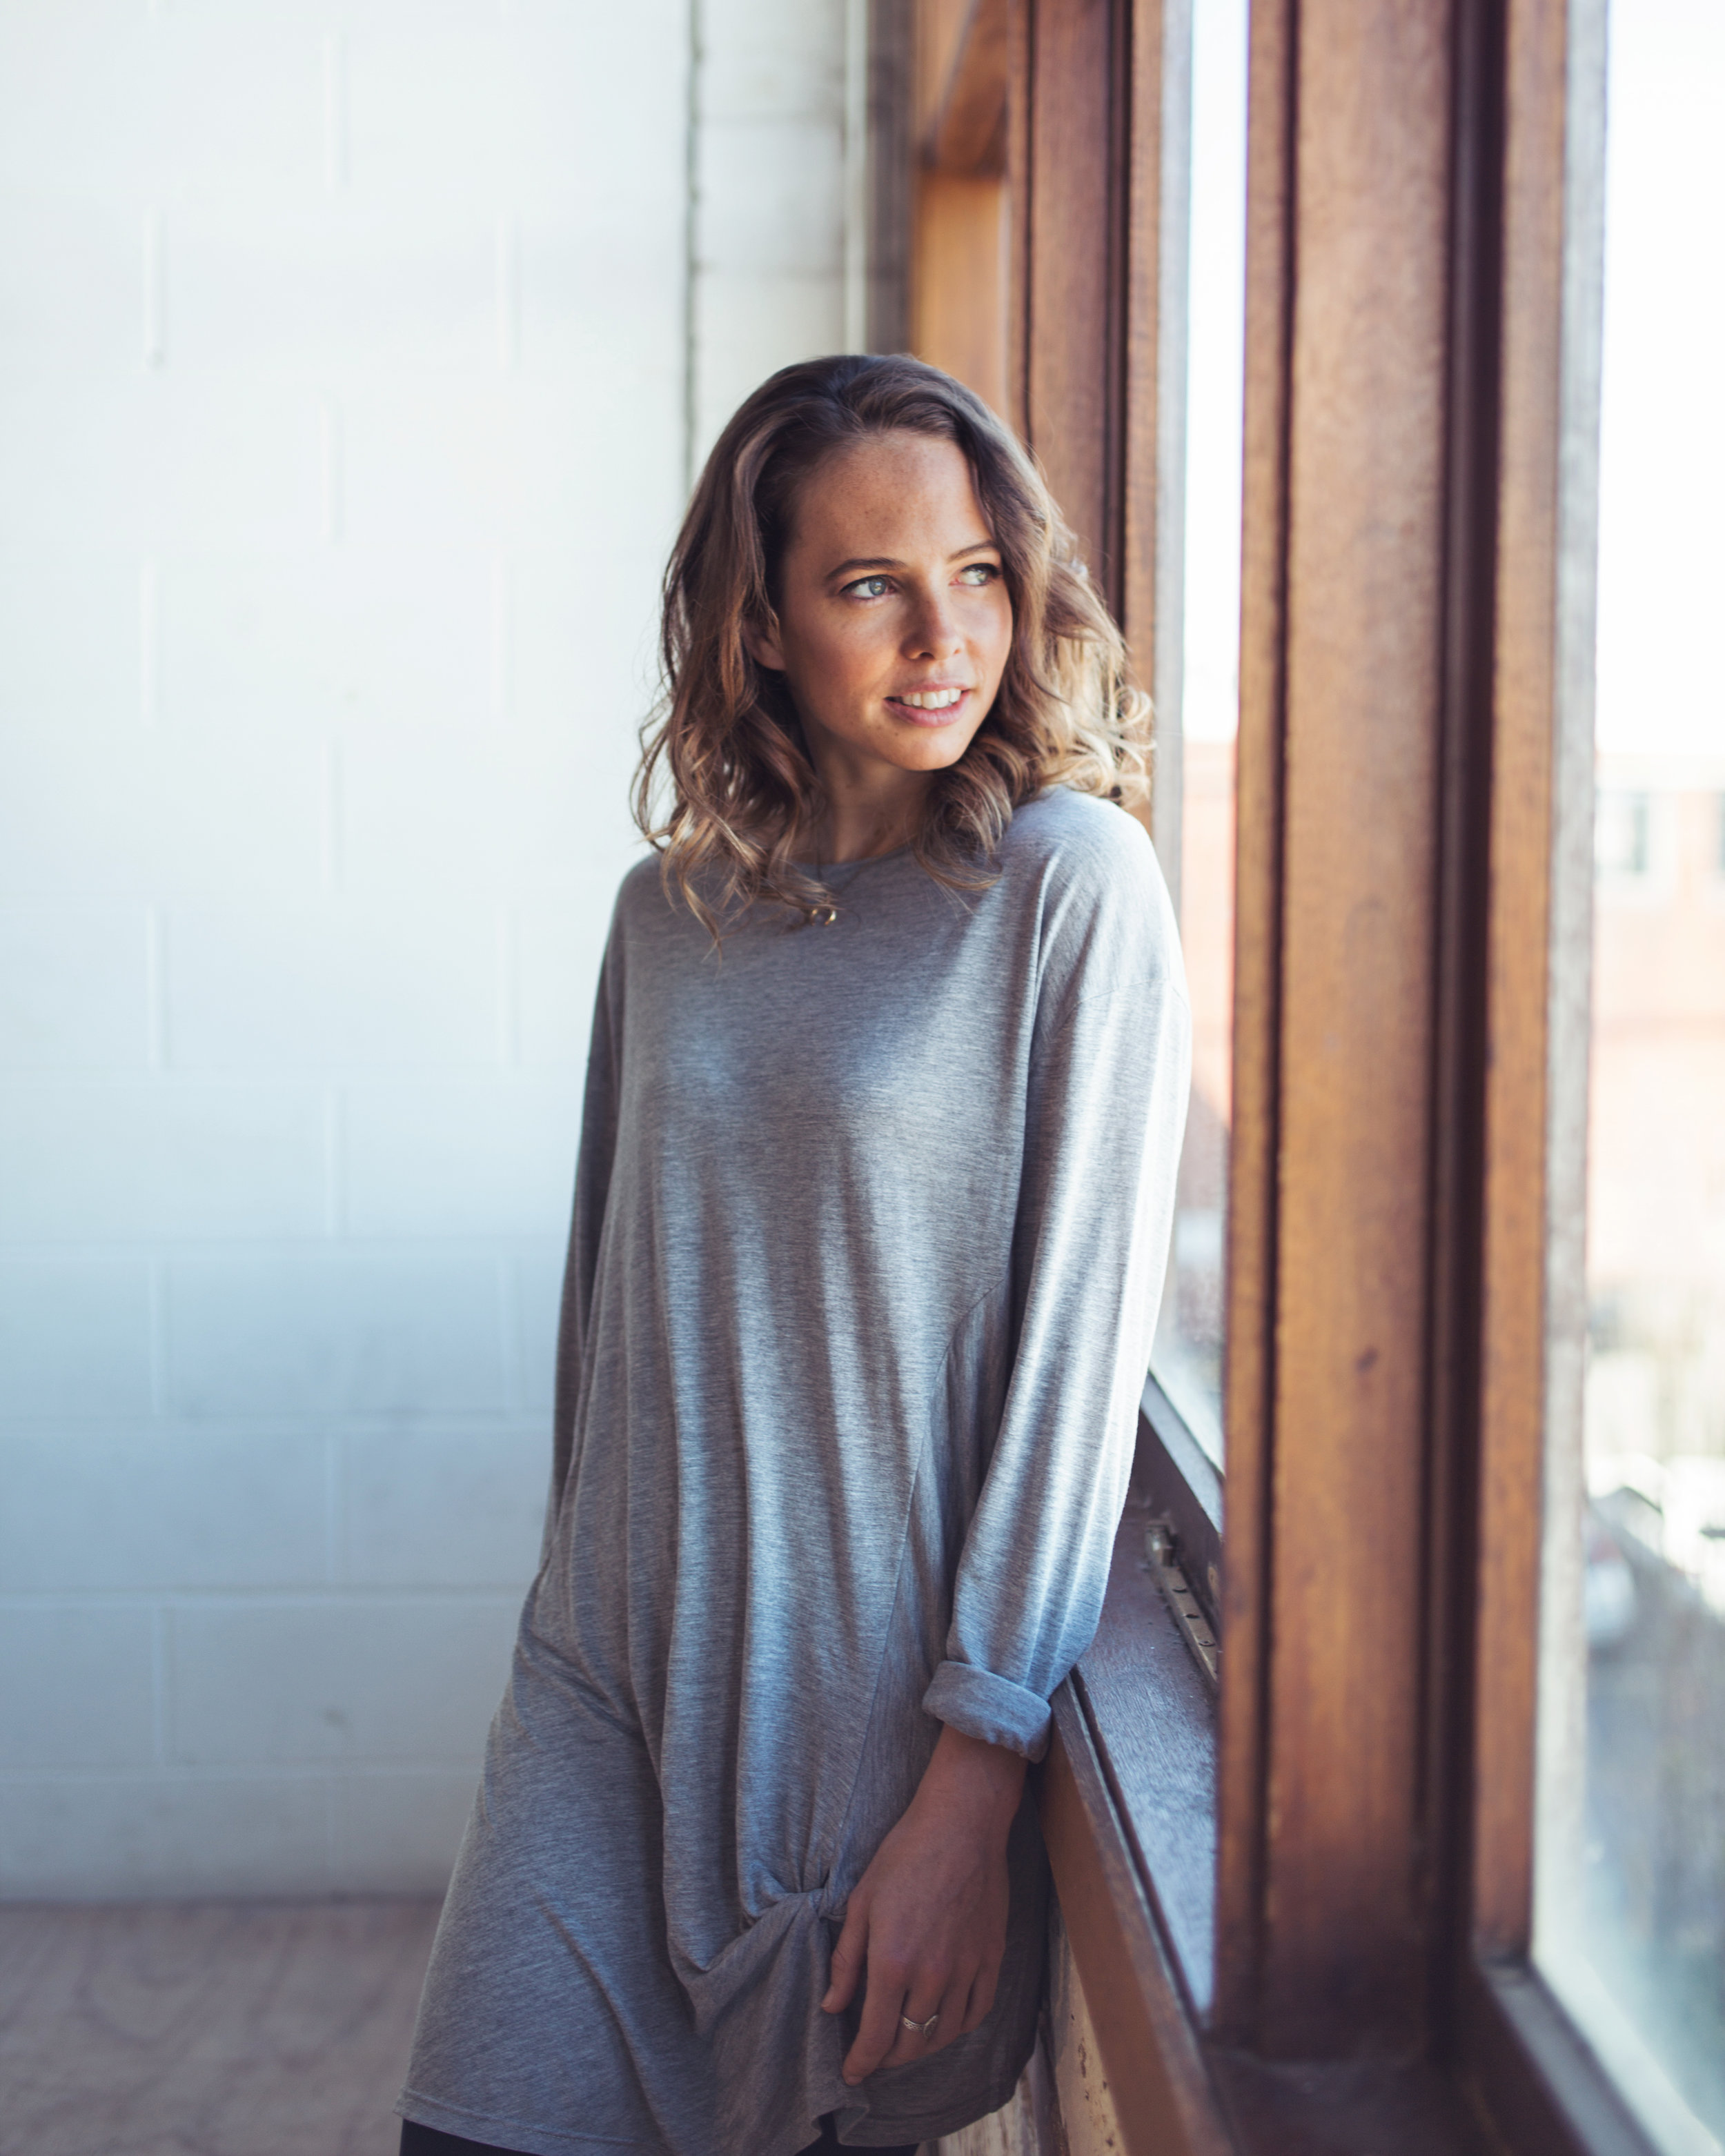 Lucy wears the  Aubrey Knot Long Sleeve Tee  from the Atelier Collection